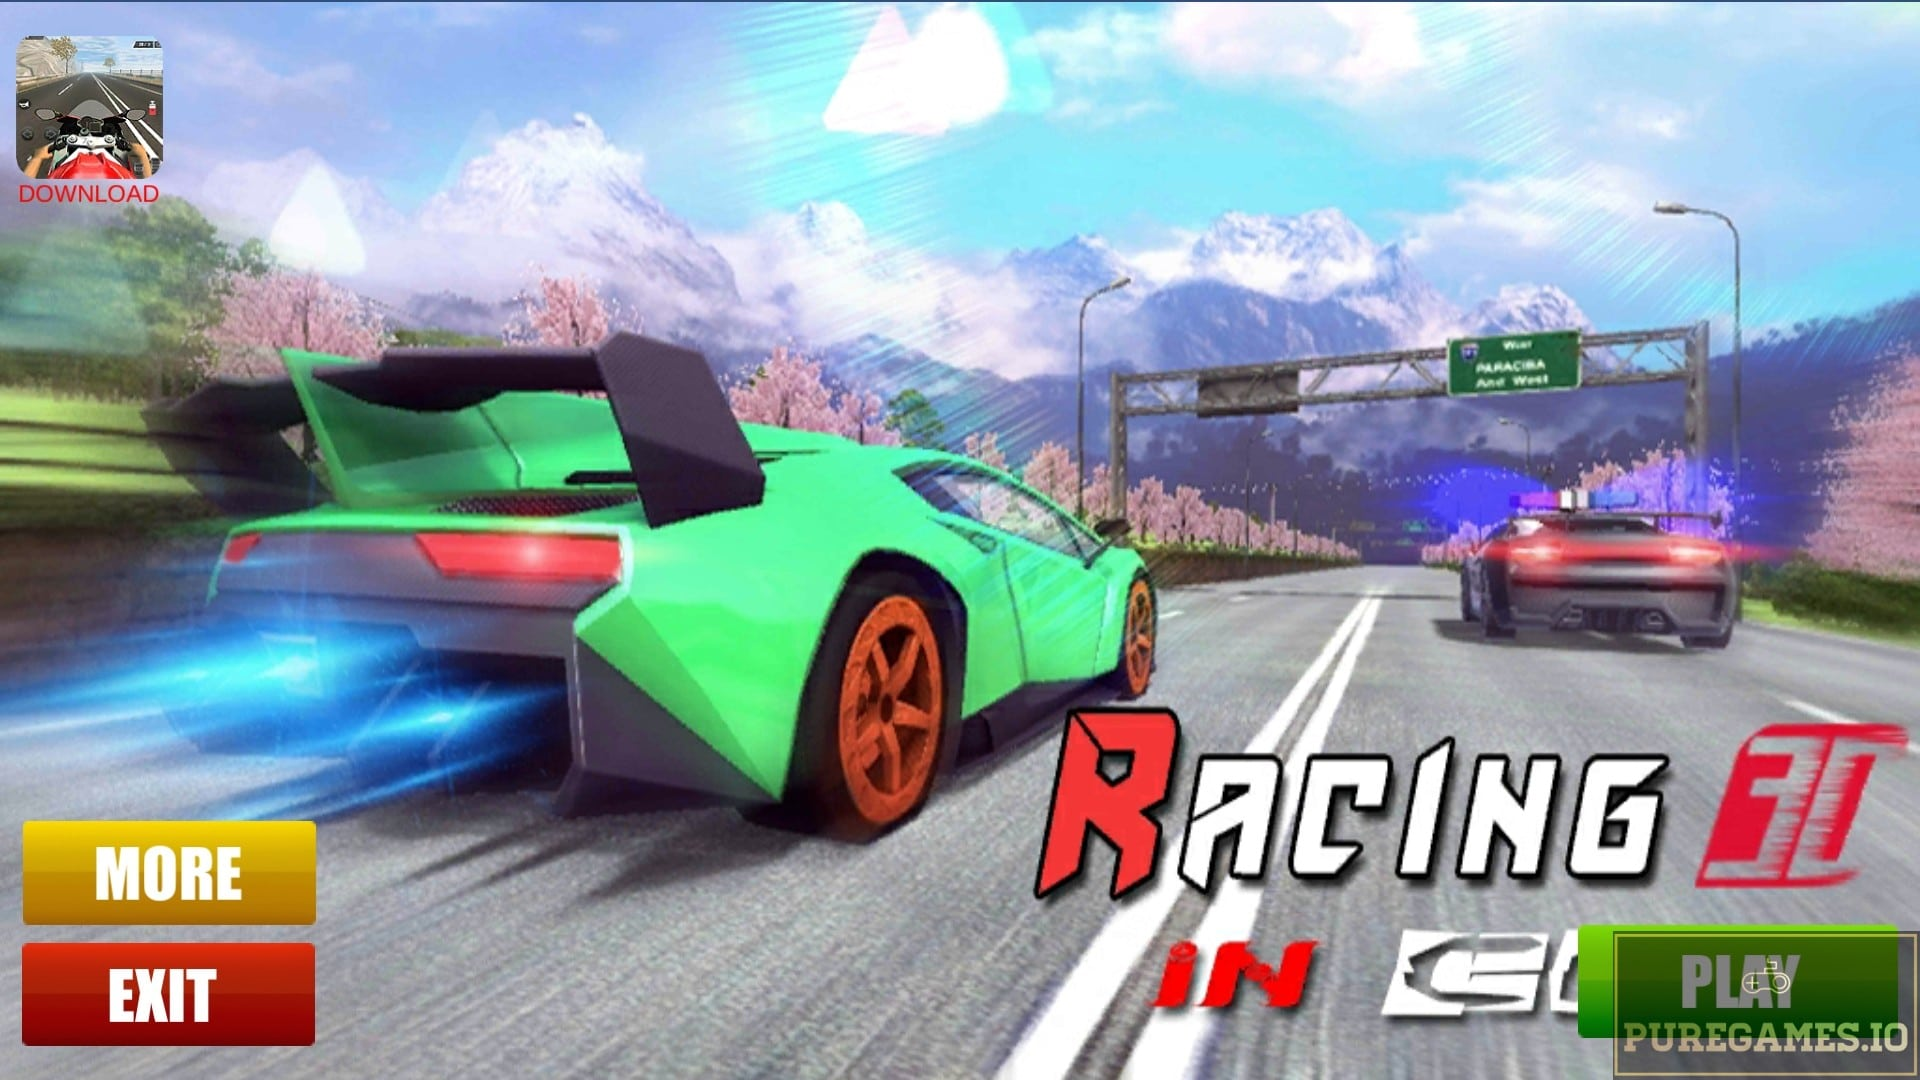 Download Racing In Car 3D APK - For Android 11